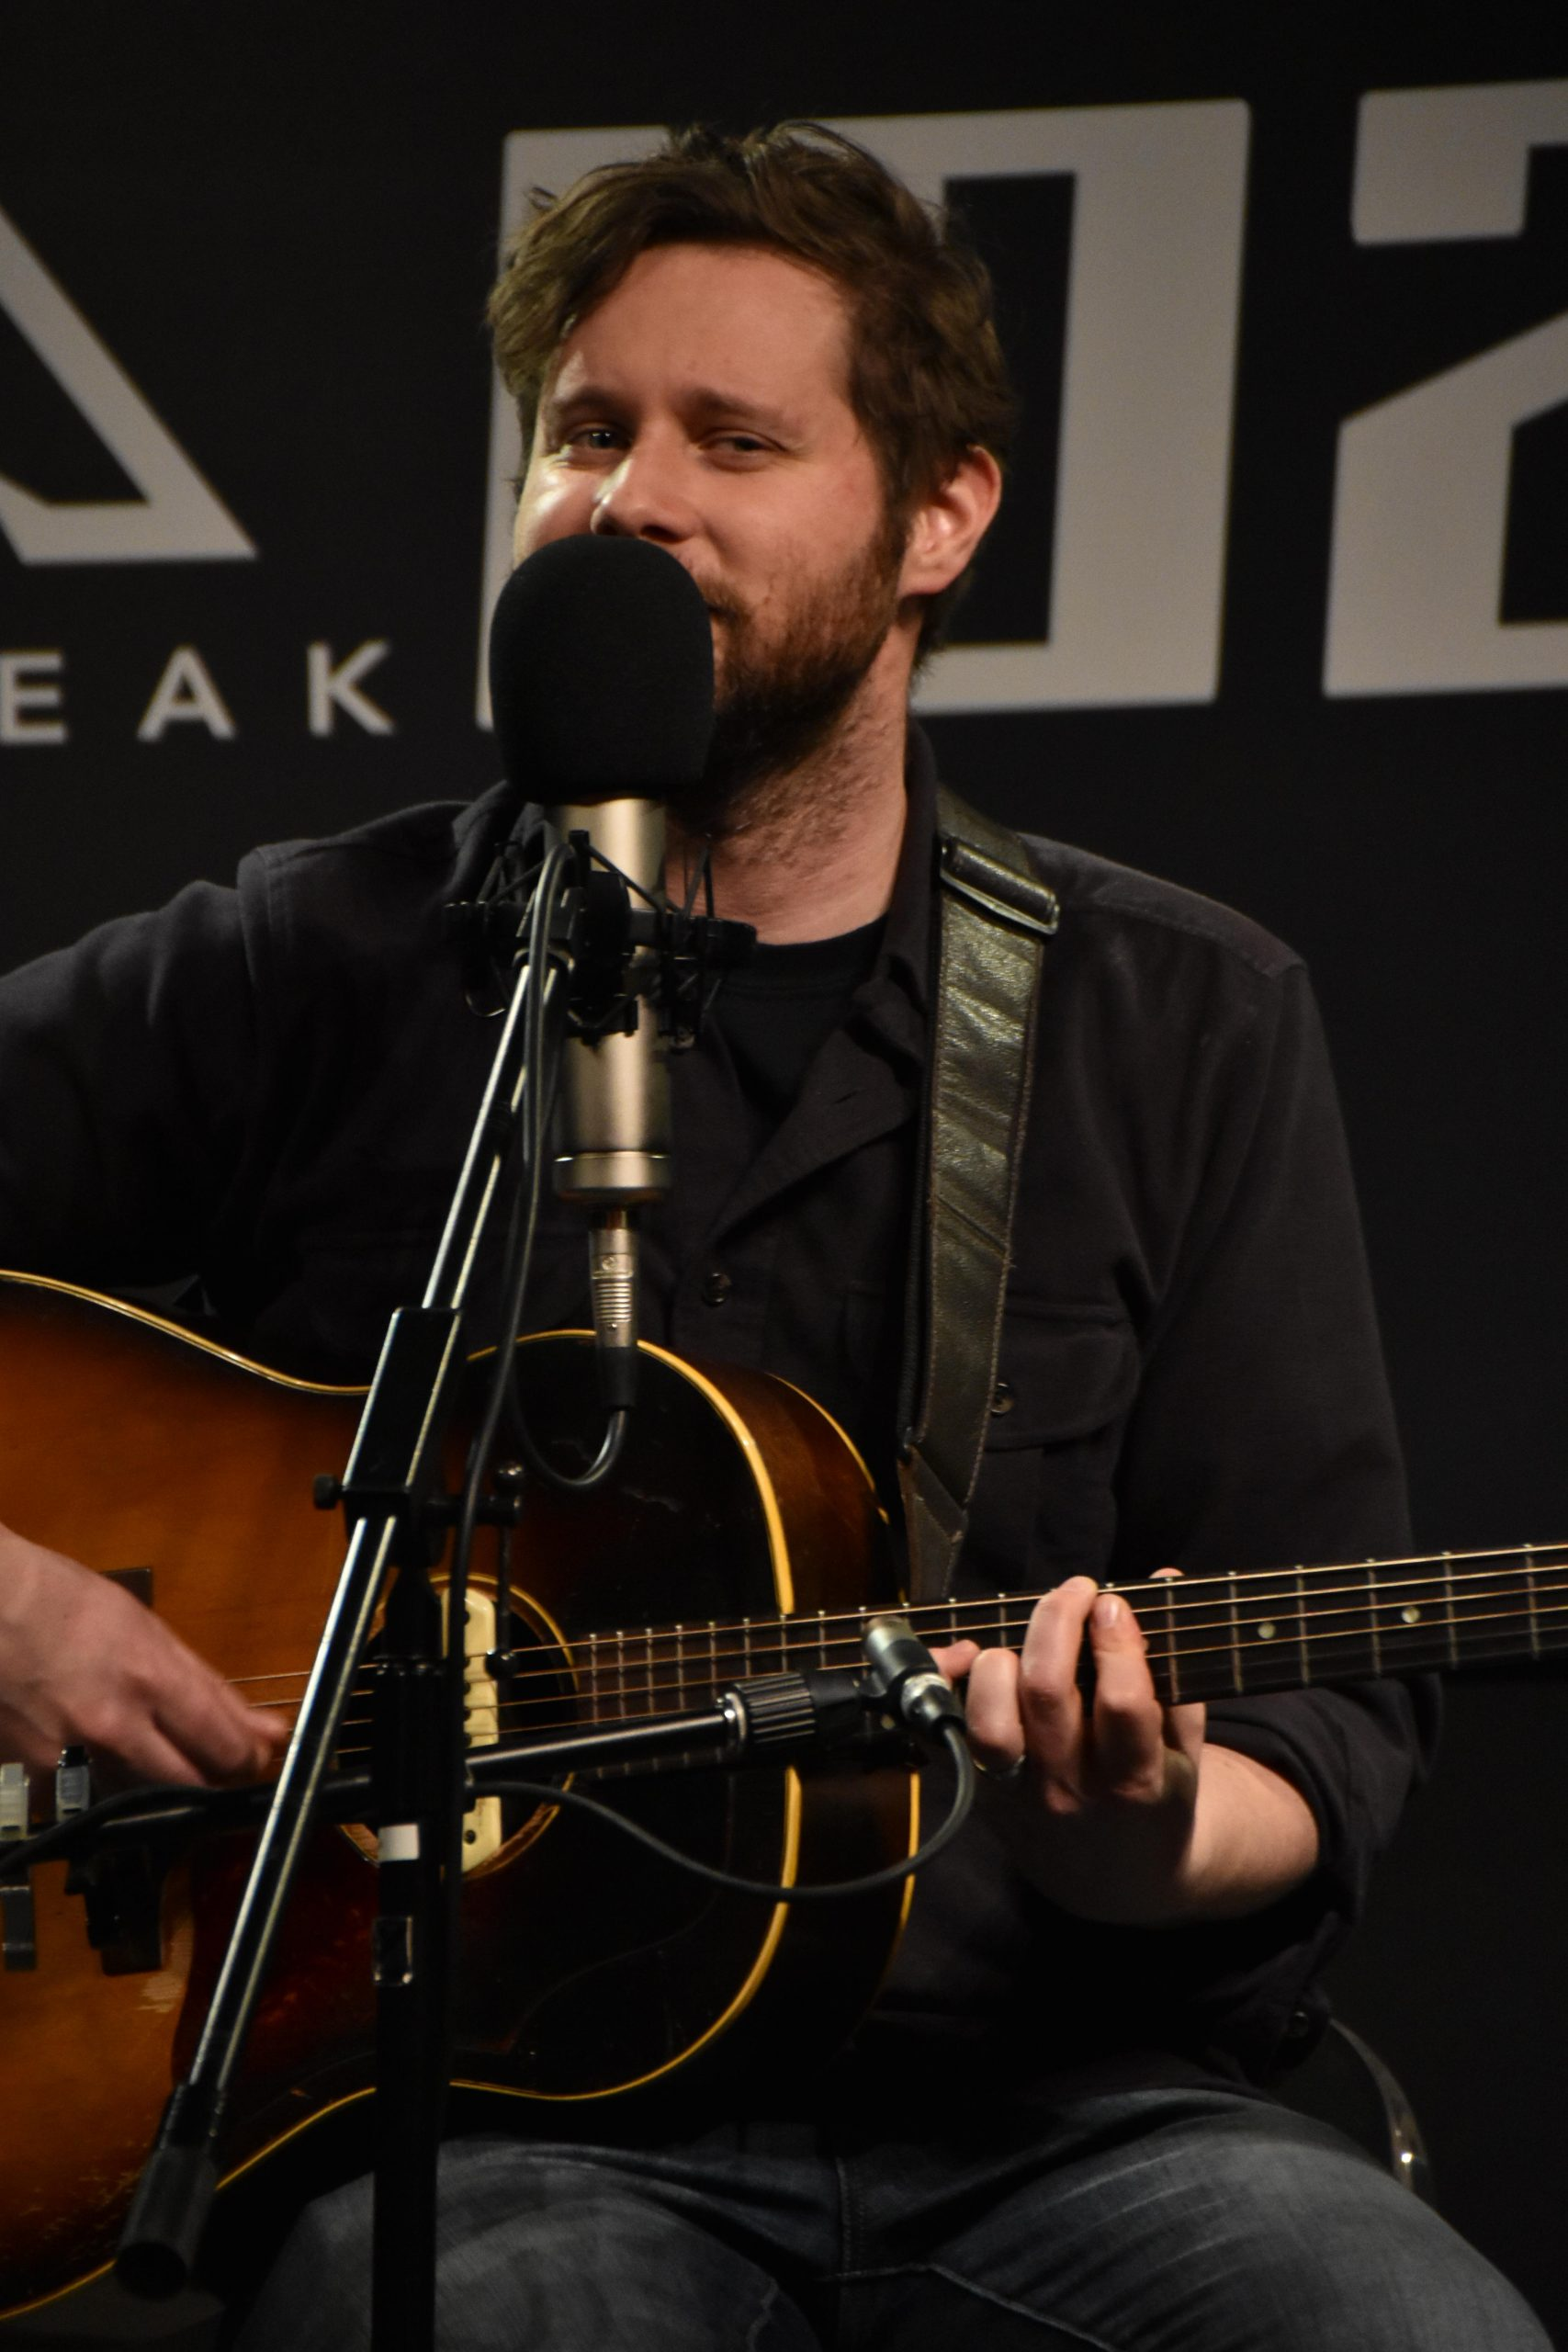 Dan Mangan in THE PEAK Lounge